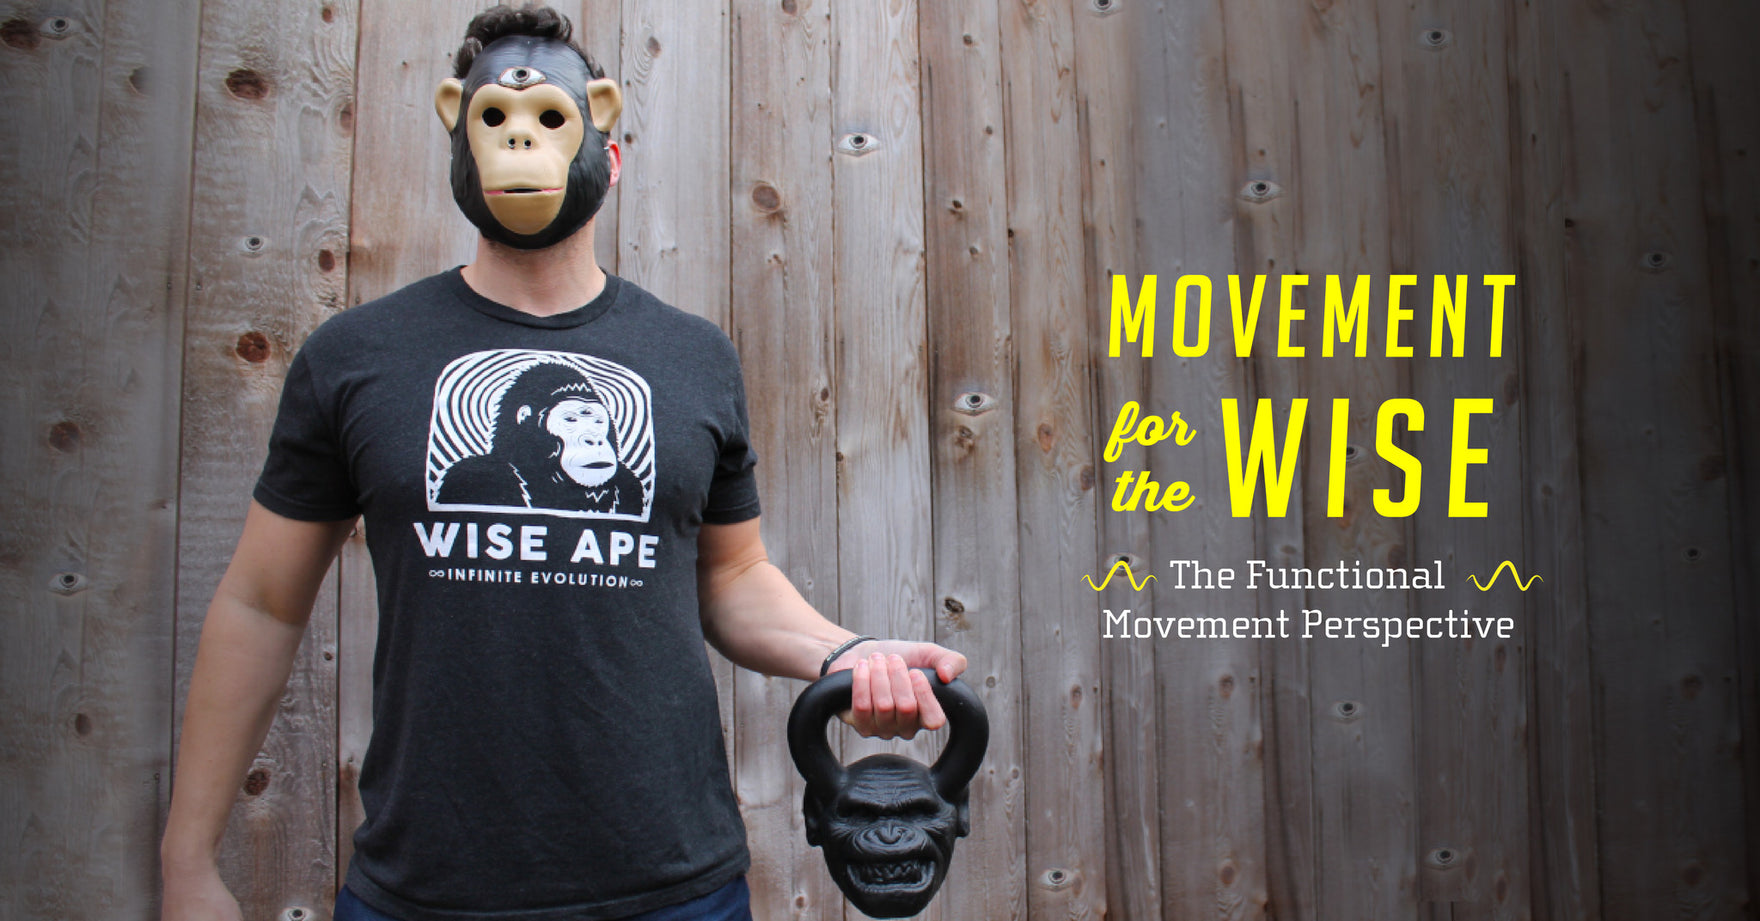 Movement for the Wise: The Functional Movement Perspective